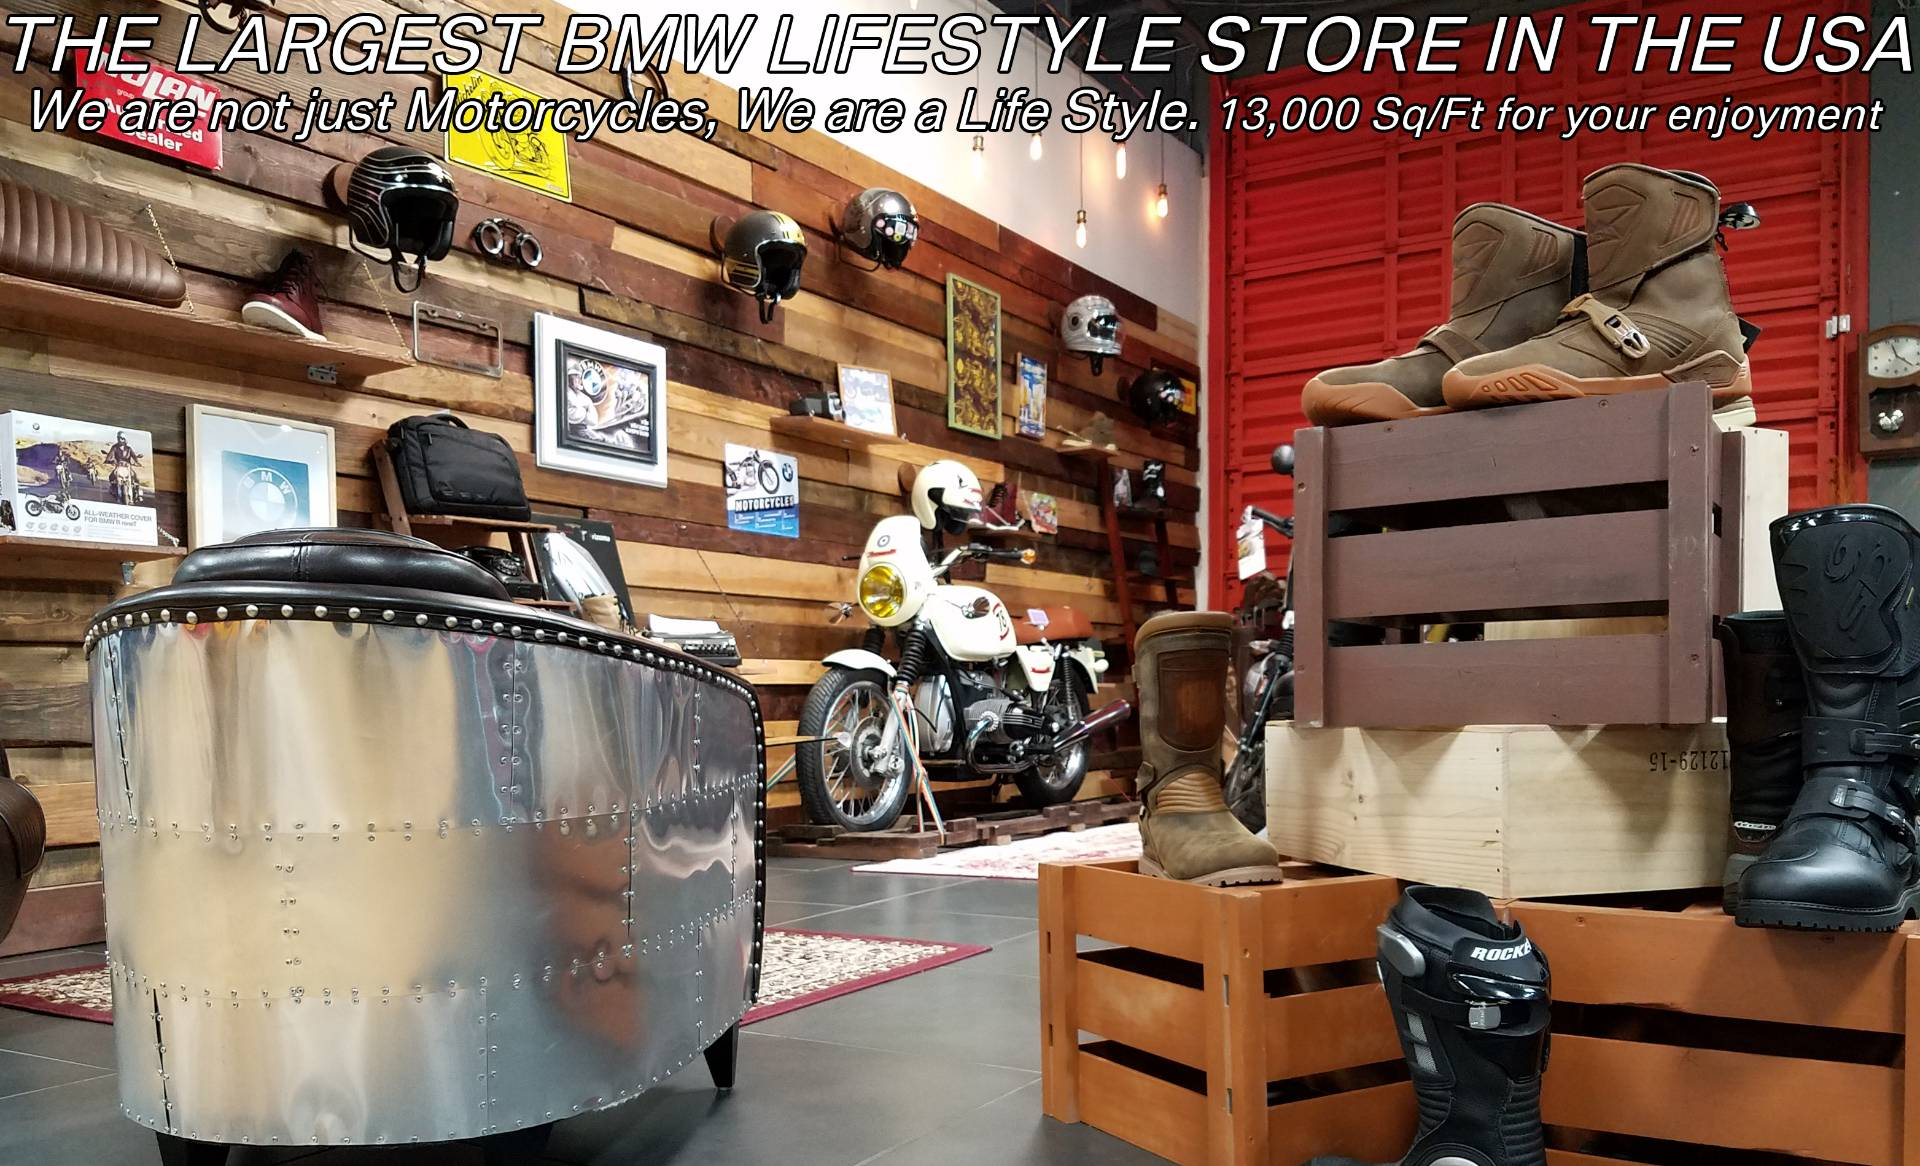 Used 2011 BMW R 1200 GSA For Sale, Pre owned BMW R 1200GSA For Sale, BMW Motorcycle R1200GSA, BMW Motorcycles of Miami, Motorcycles of Miami, Motorcycles Miami - Photo 38